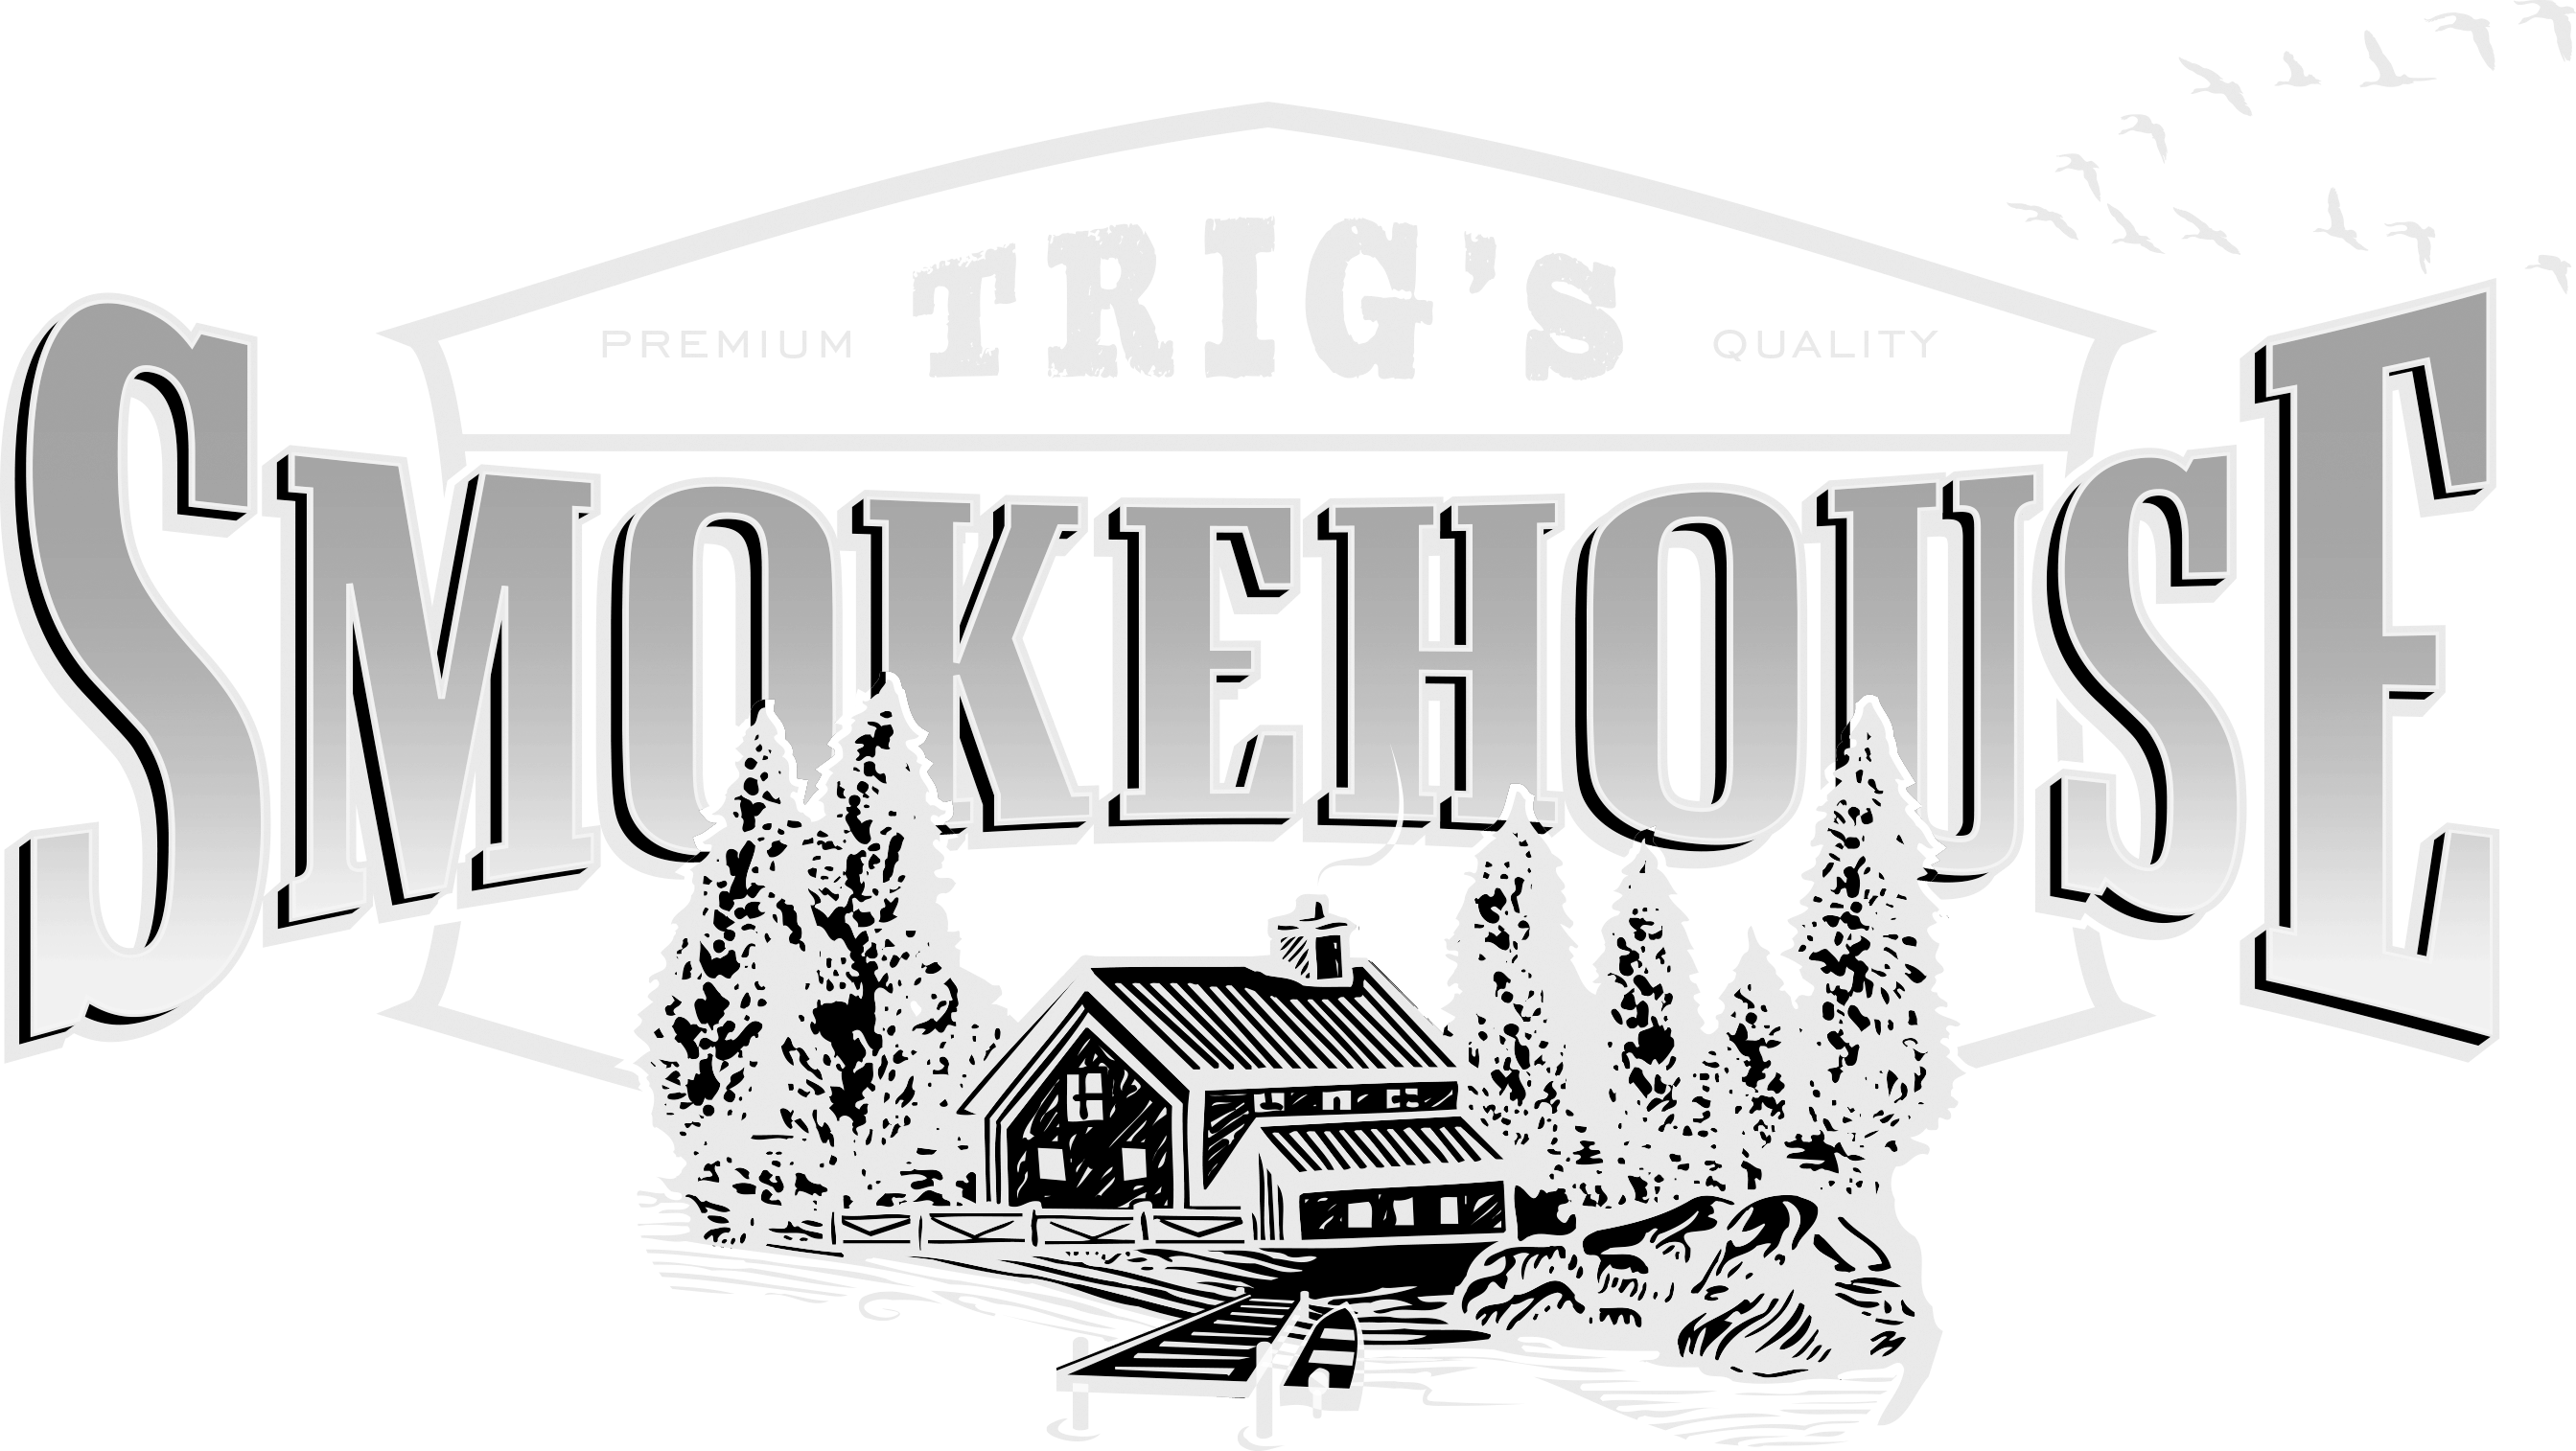 Trig's Smokehouse